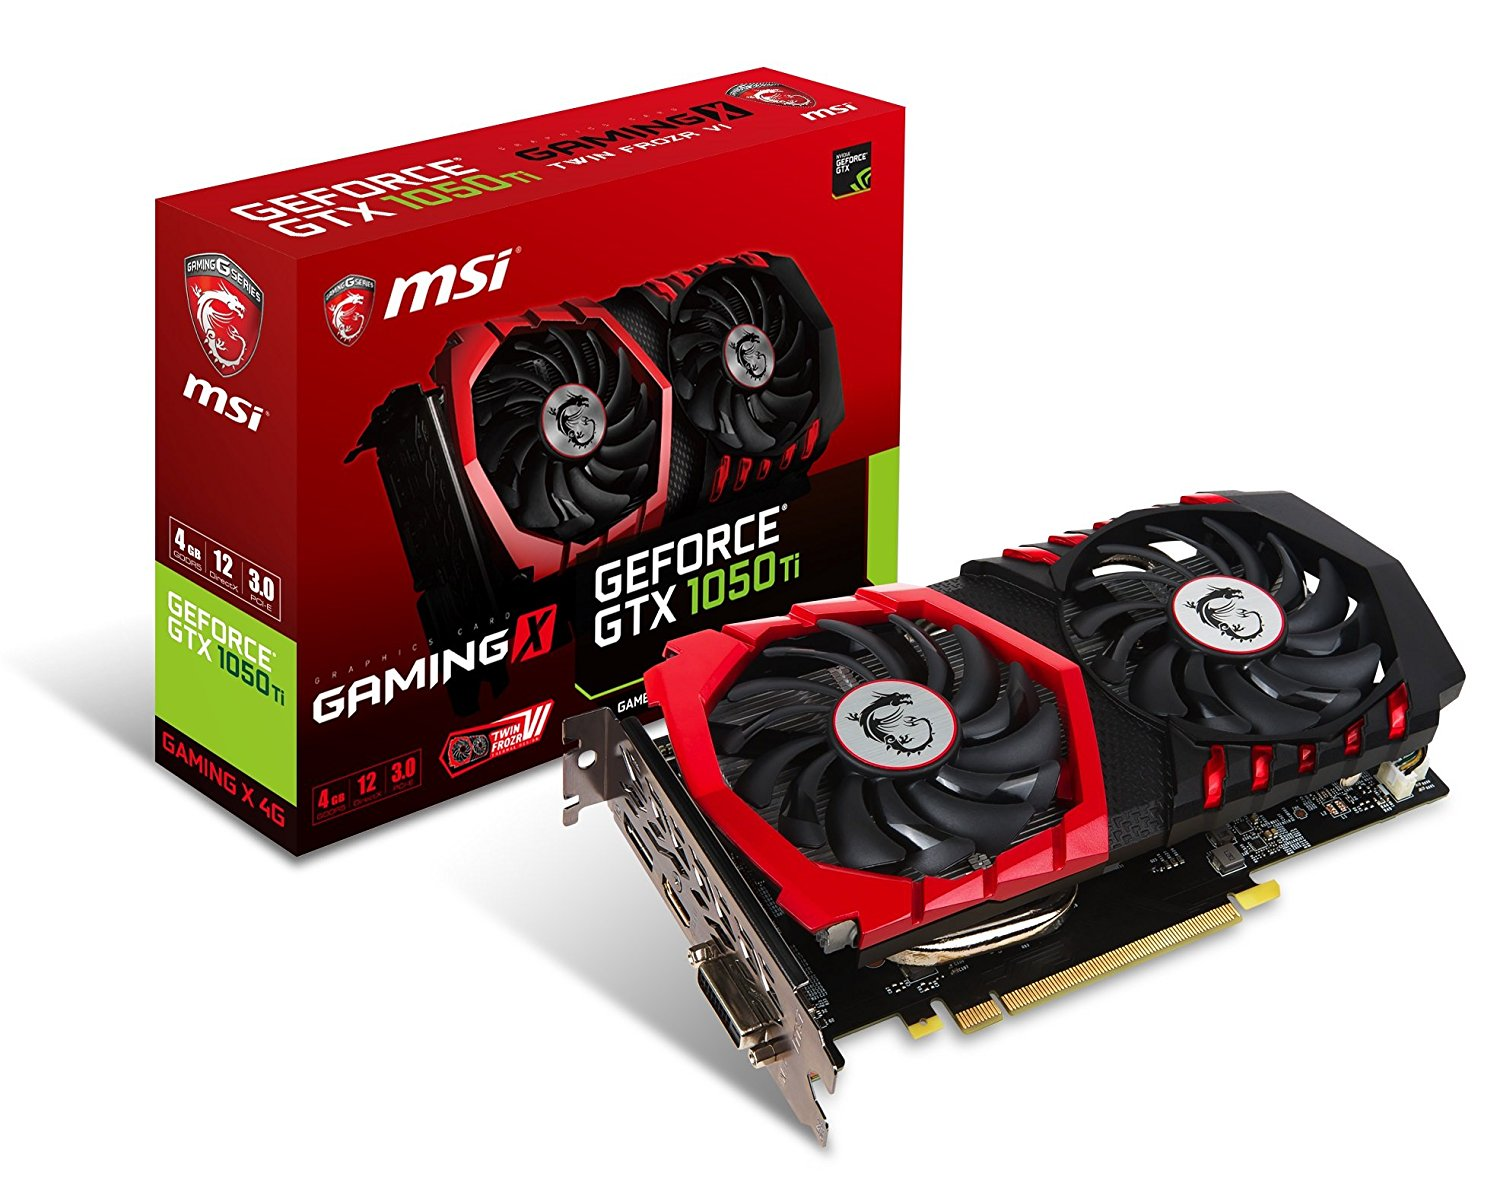 MSI Gaming GeForce GTX 1050 Ti 4GB GDDR5 DirectX 12 Graphics Card GeForce GTX 1050 Ti Gaming X 4G